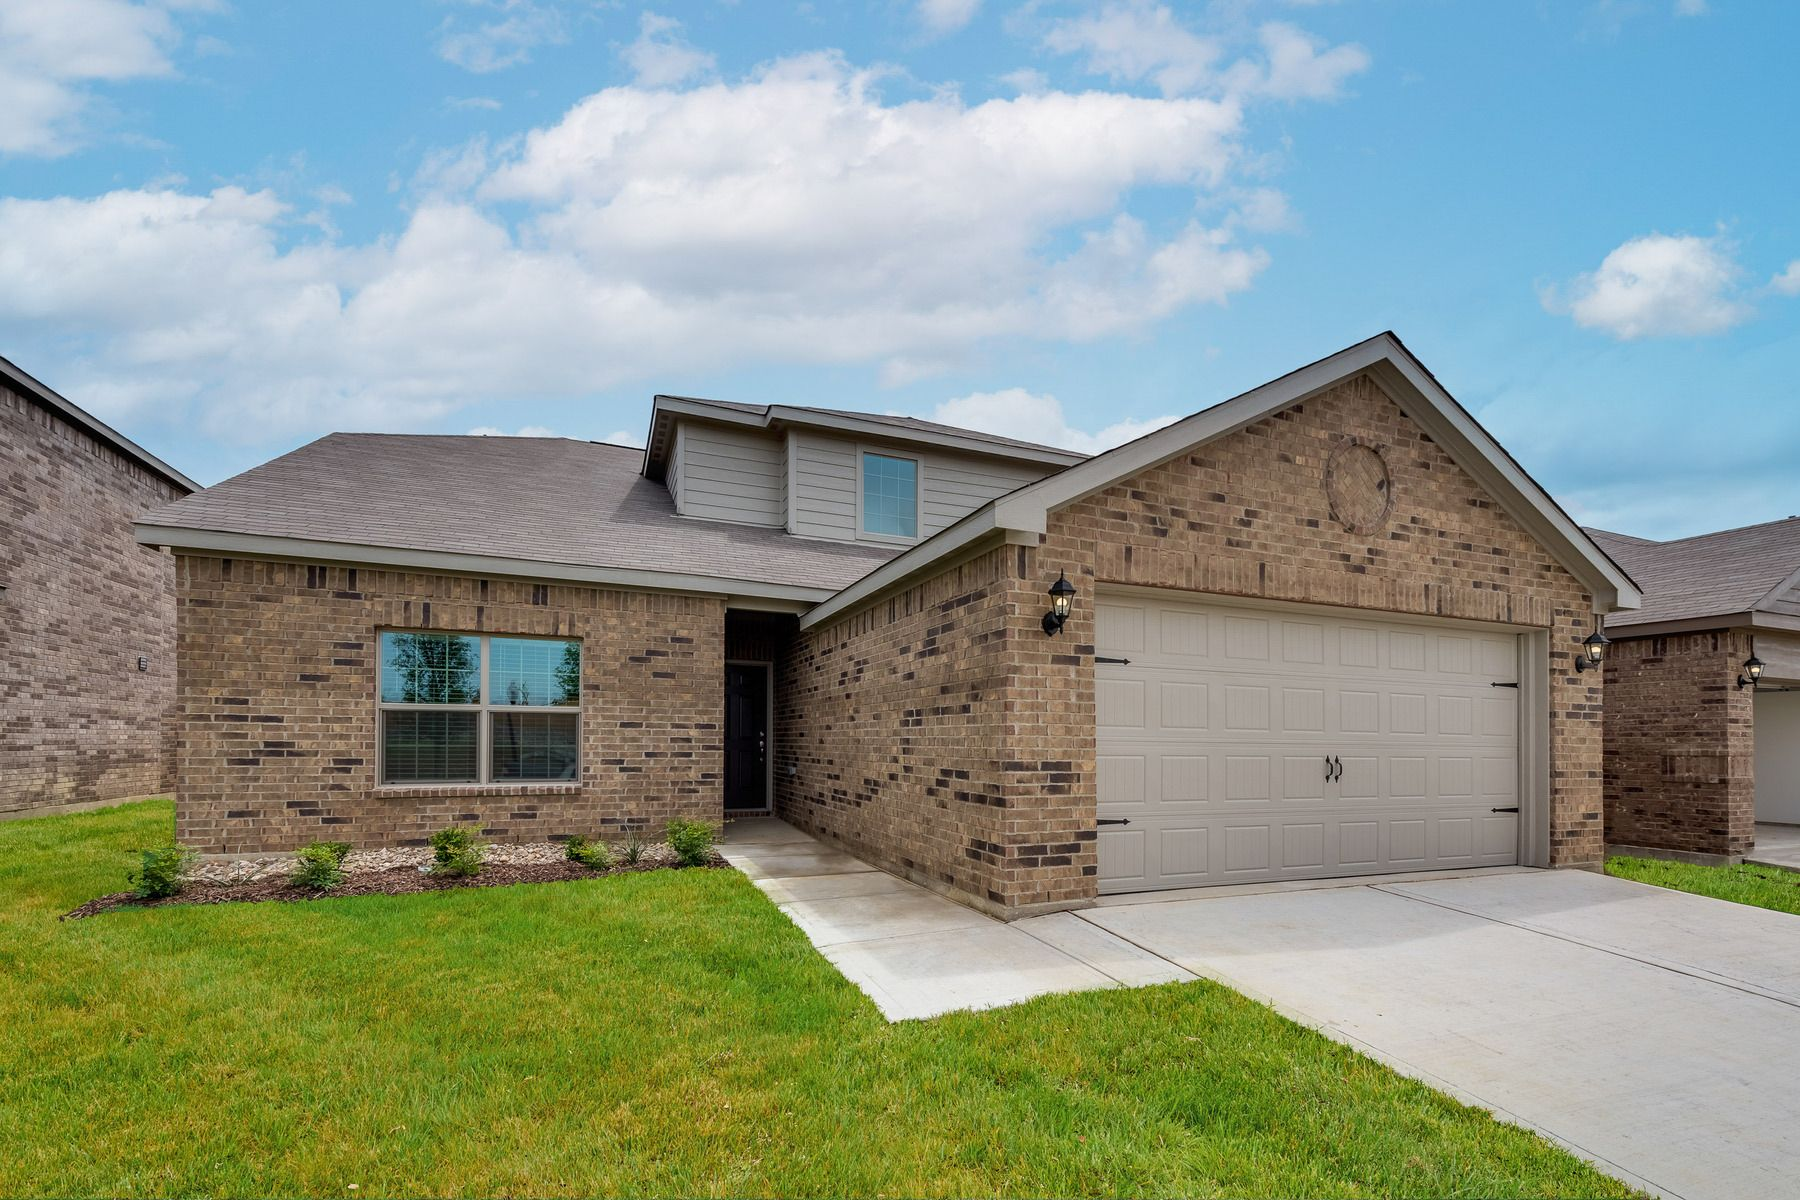 The Cypress by LGI Homes:This home boasts incredible curb appeal.